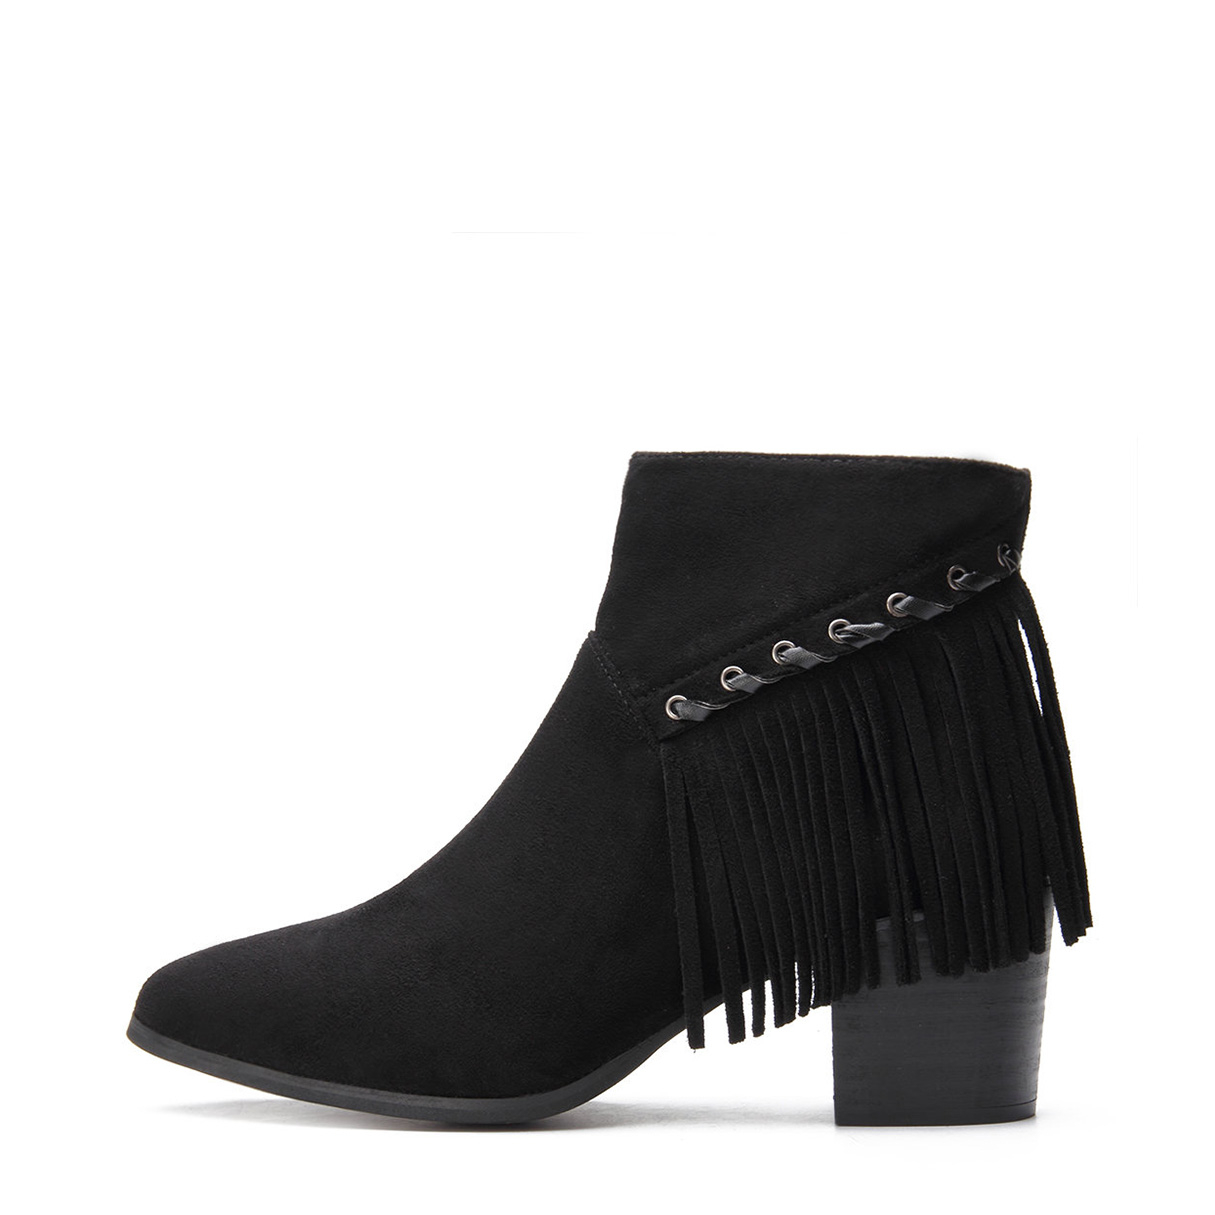 Black Suede Chunky Heels Tassel Design Ankle Boots